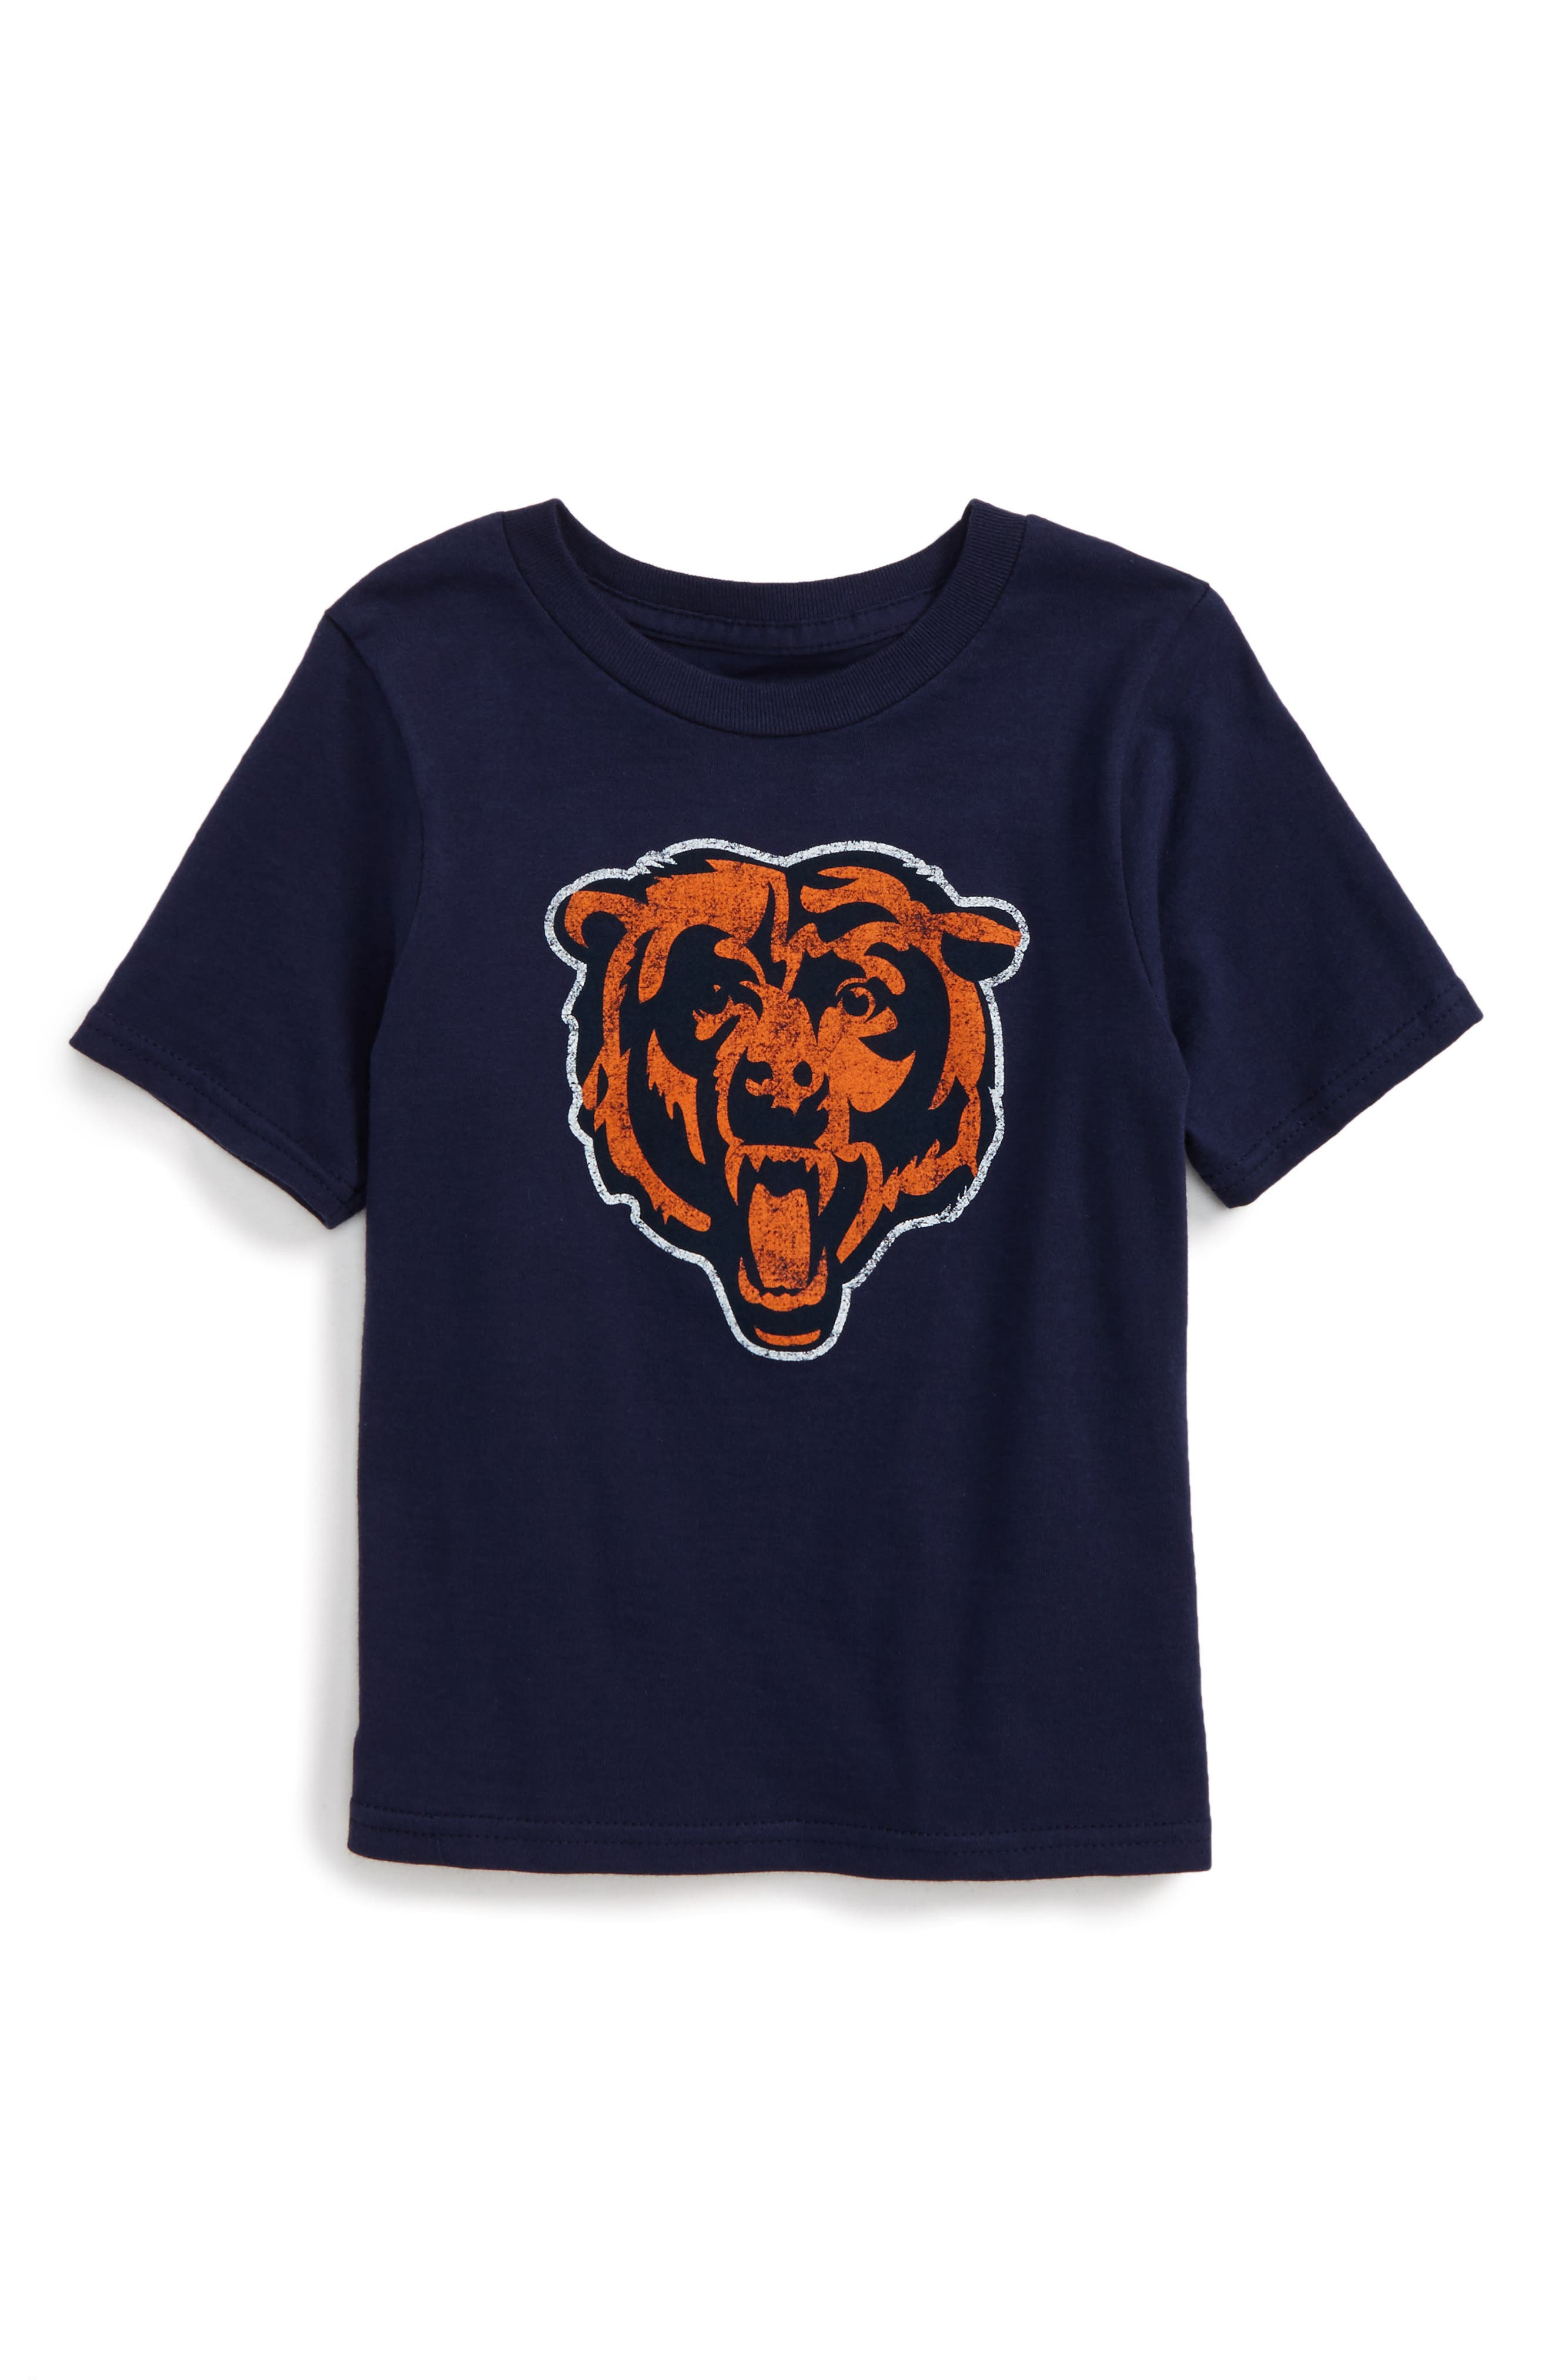 'NFL - Chicago Bears' Distressed Logo Graphic T-Shirt,                             Alternate thumbnail 2, color,                             410